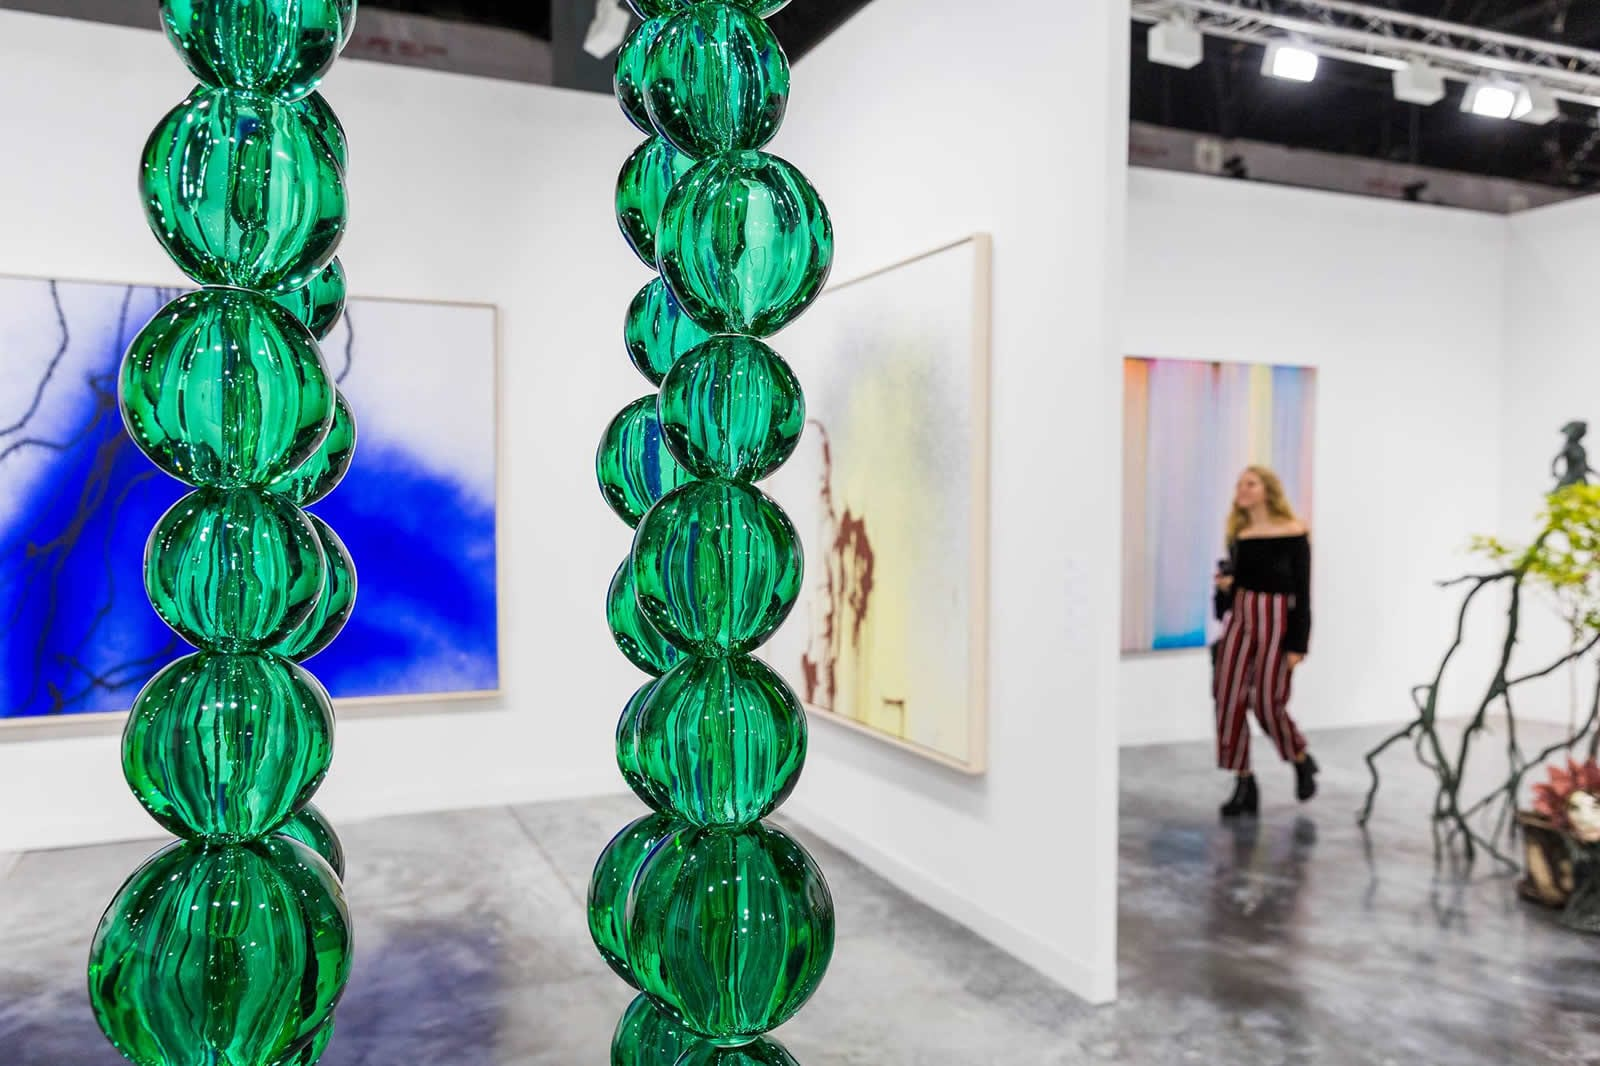 Louer Appartement New York Art Basel Miami Beach - Exposition, Galeries D'art